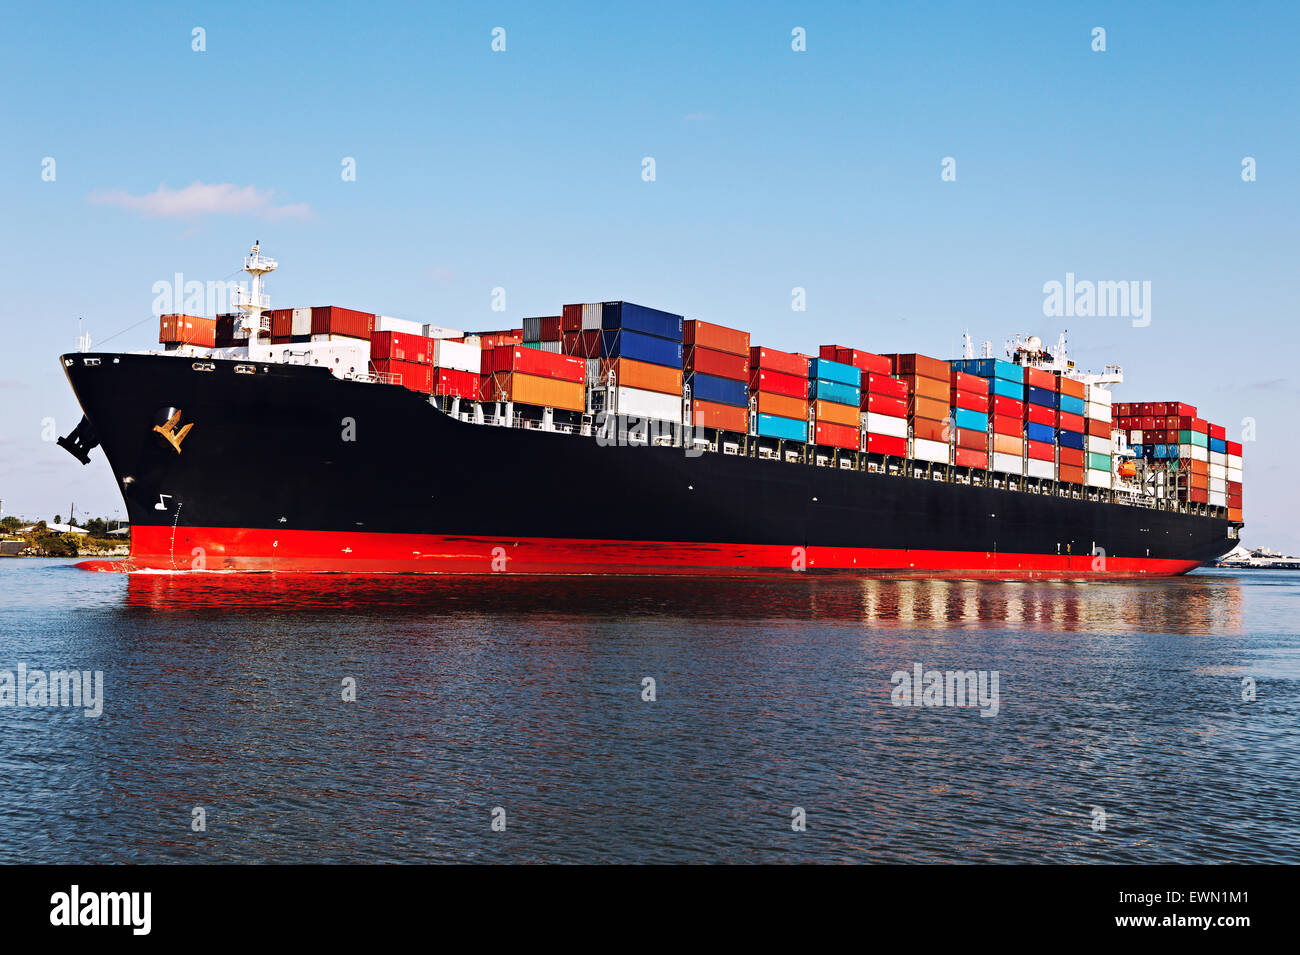 Cargo ship at the port - Stock Image